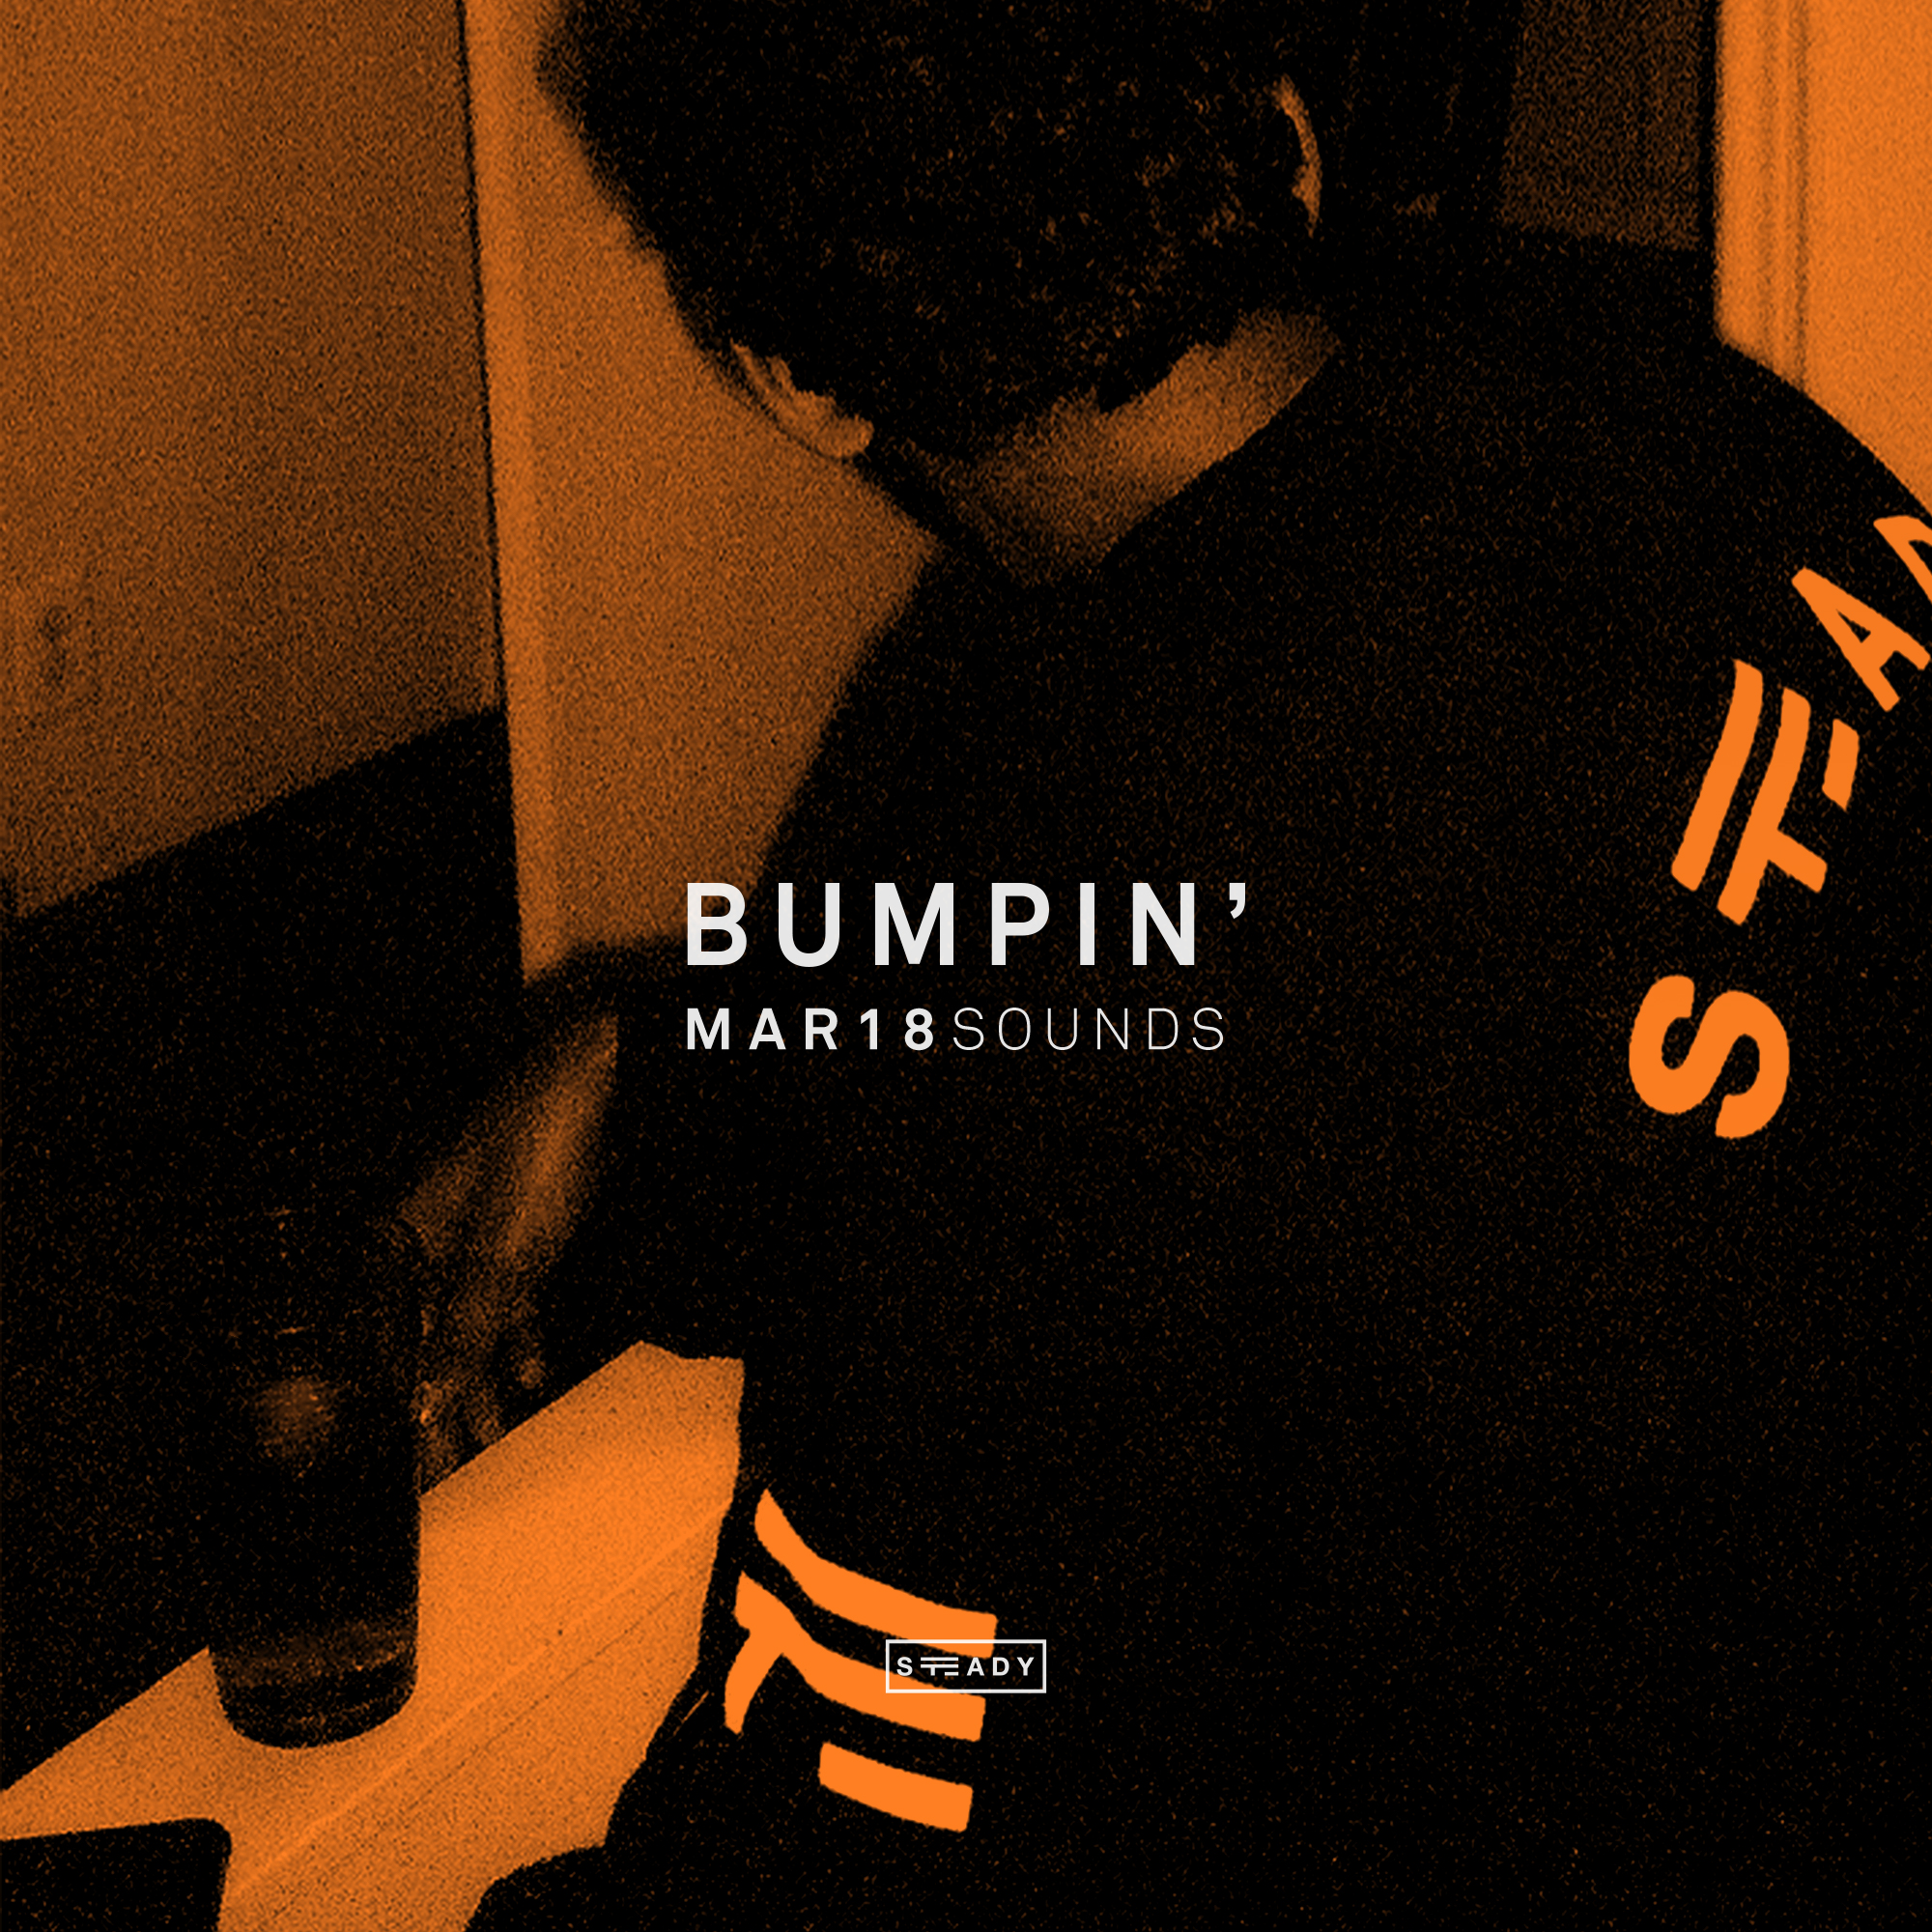 STEADY BUMPIN': MAR18 SOUNDS